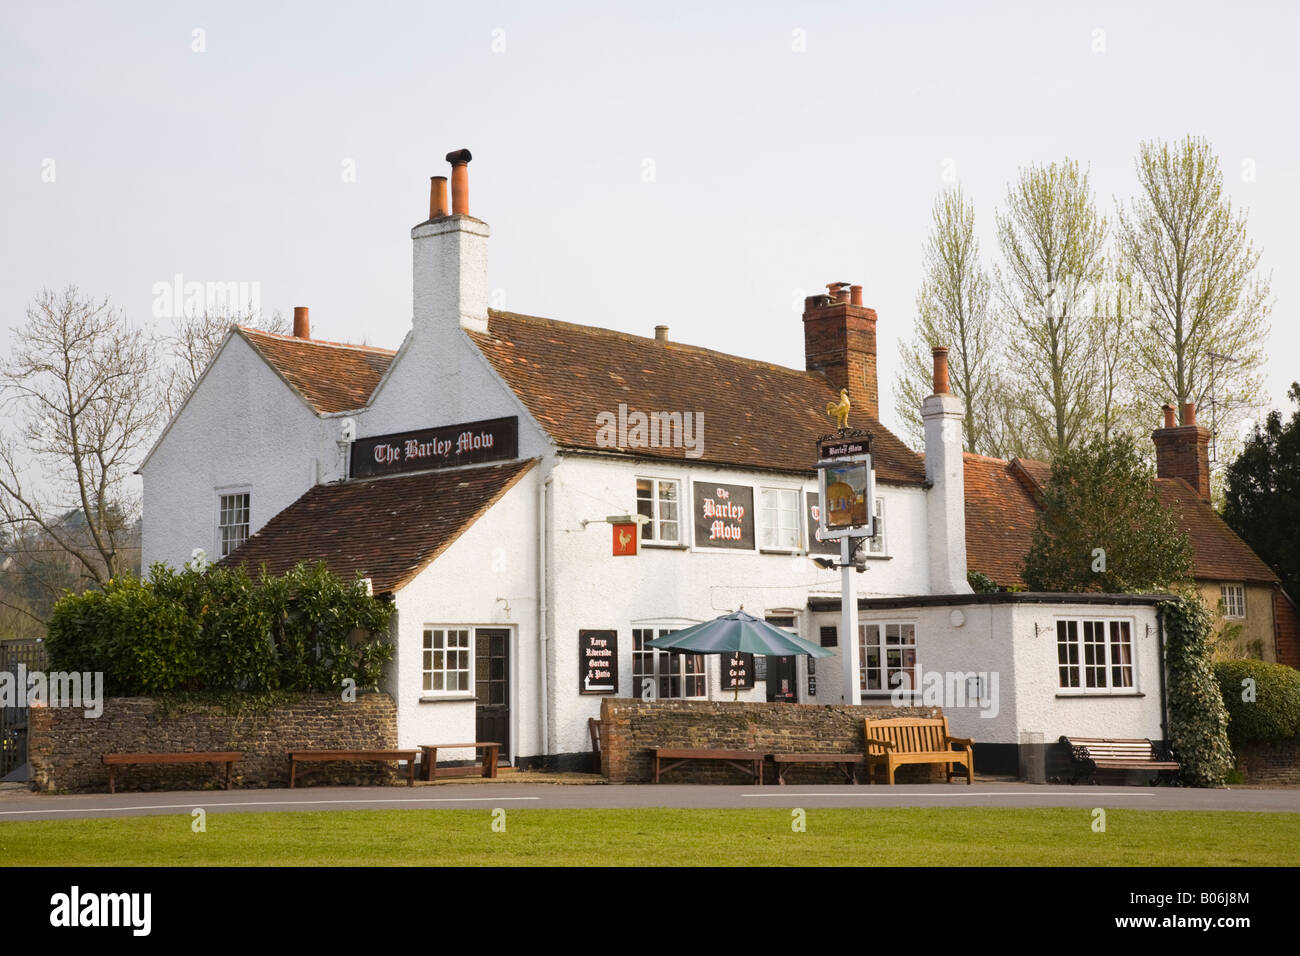 The Barley Mow traditional rural village pub in Tilford Surrey England UK Britain - Stock Image